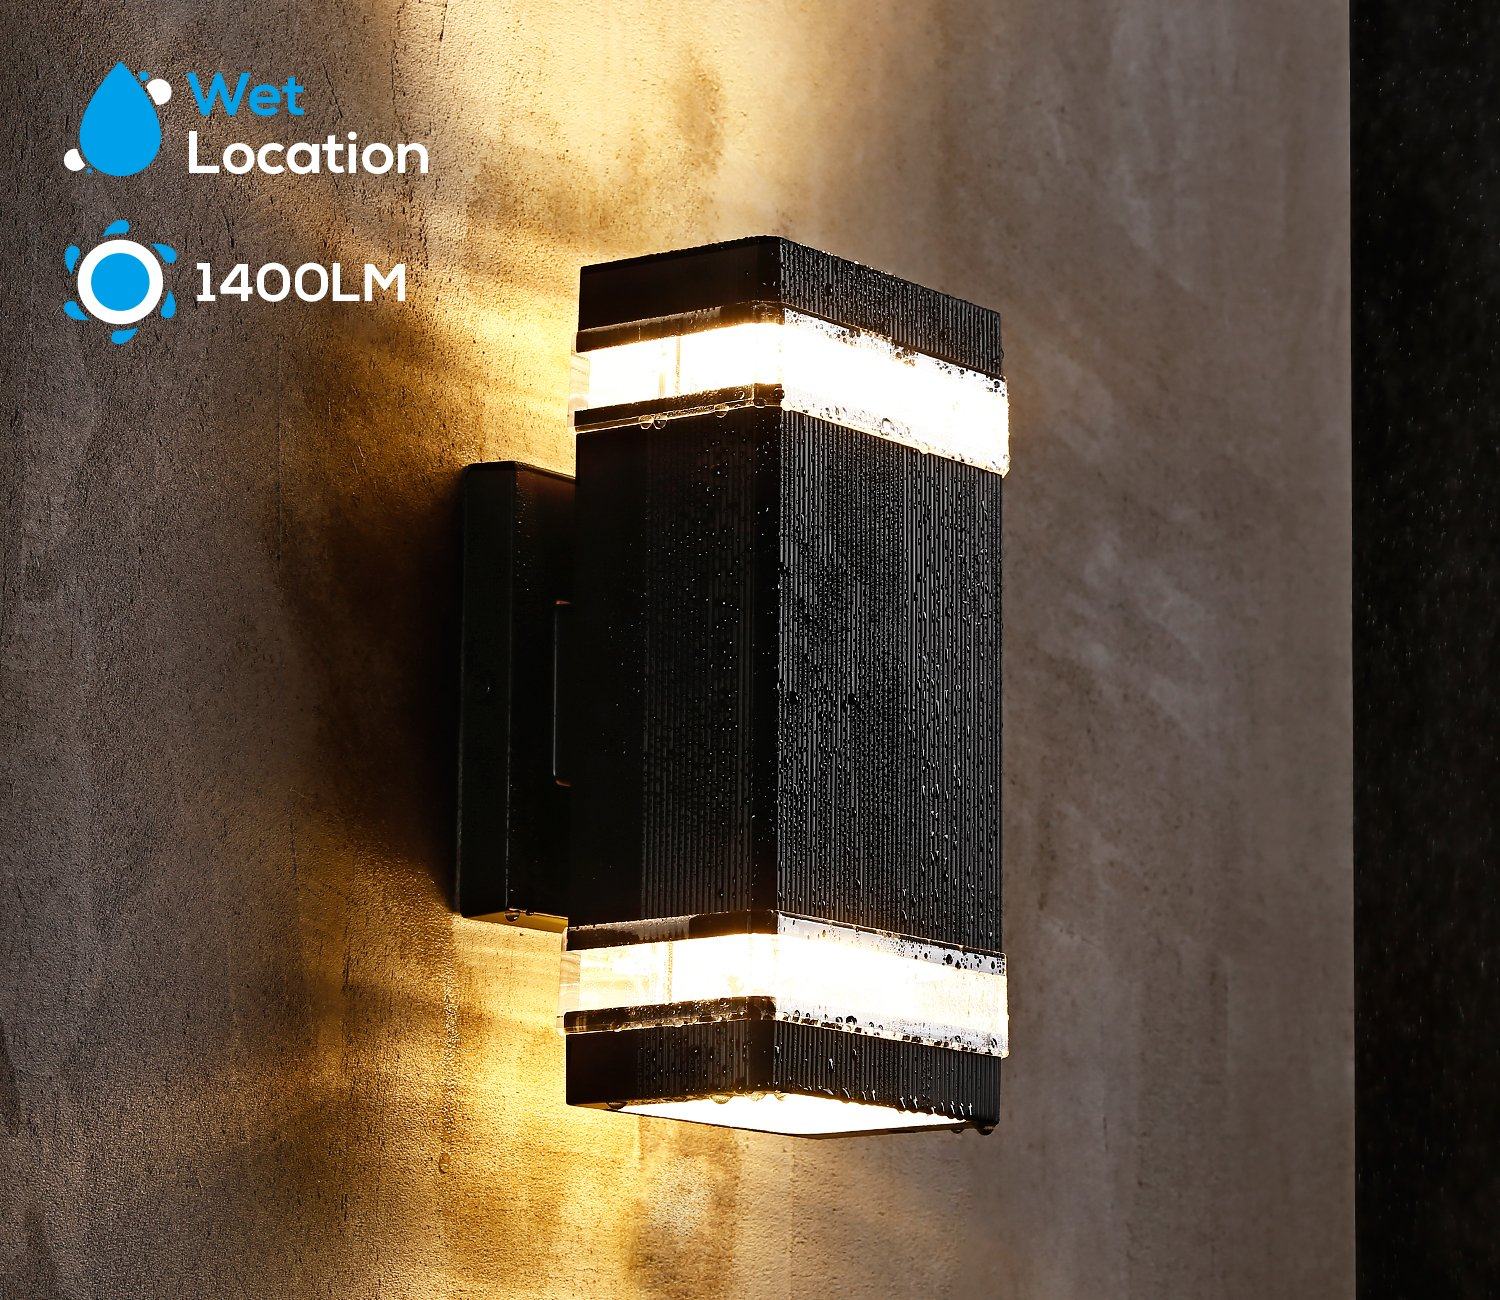 LEONLITE LED Square Up/Down Wall Light, 20W (120W Equivalent), ETL & Energy Star Certified, 3000K Warm White, 1400lm, Outdoor Waterproof LED Wall Mount Lamp, 5 Years Warranty, Pack of 2 by LEONLITE (Image #6)